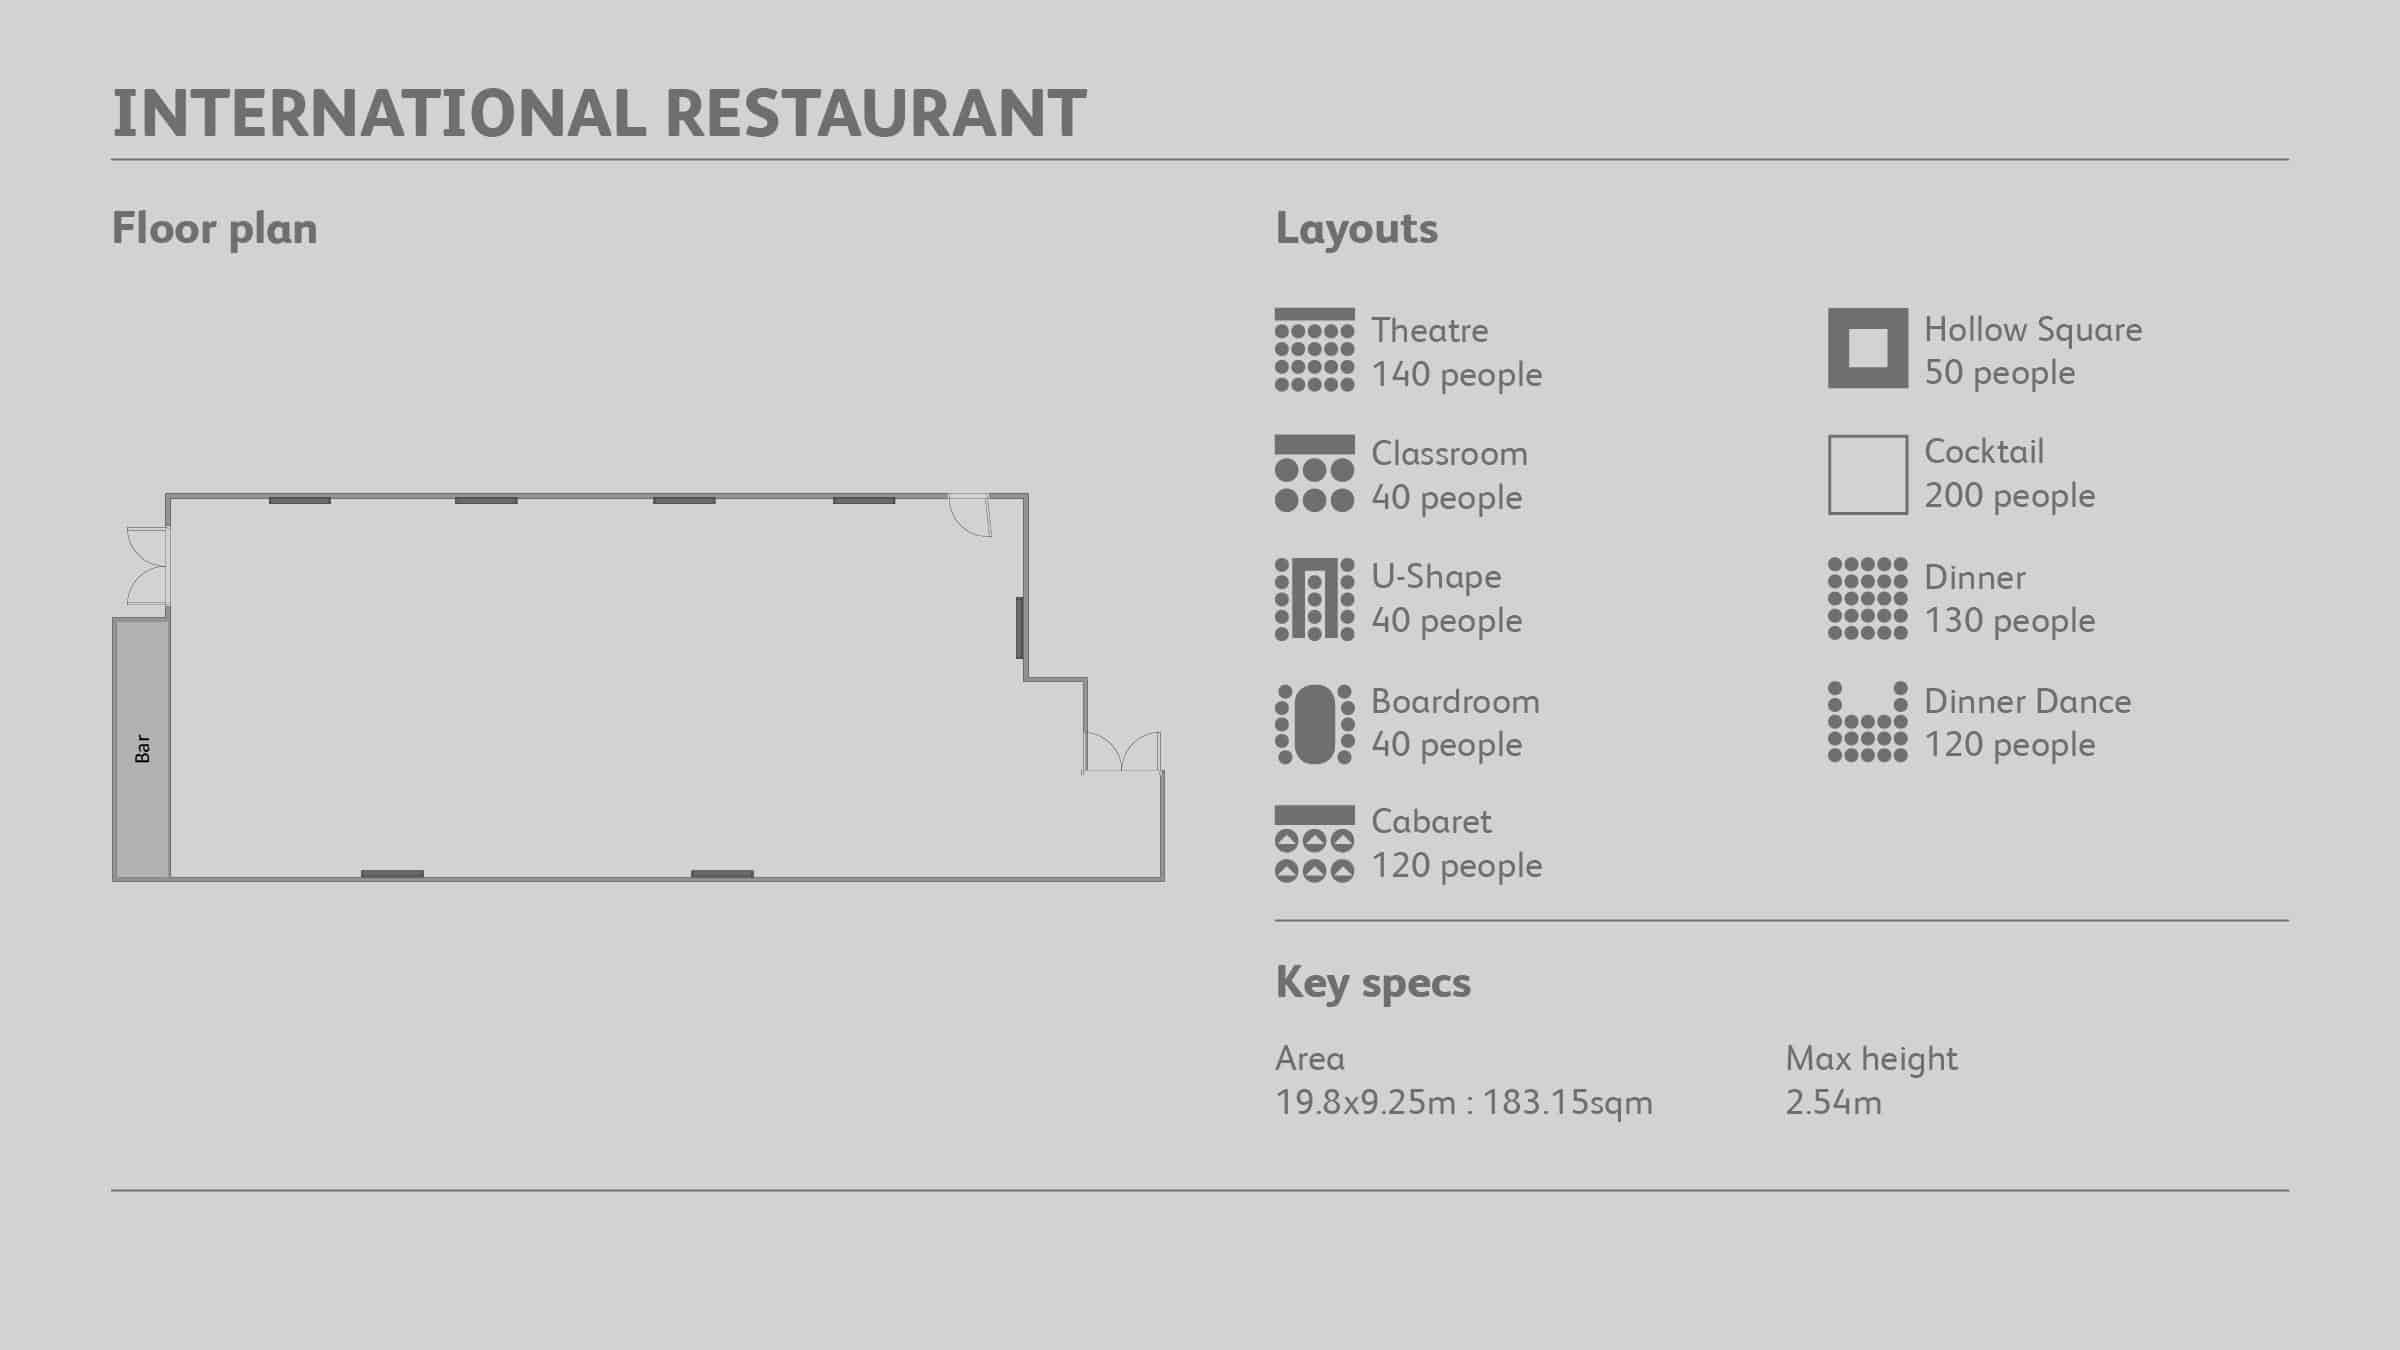 The International Suite at Molineux floor plan